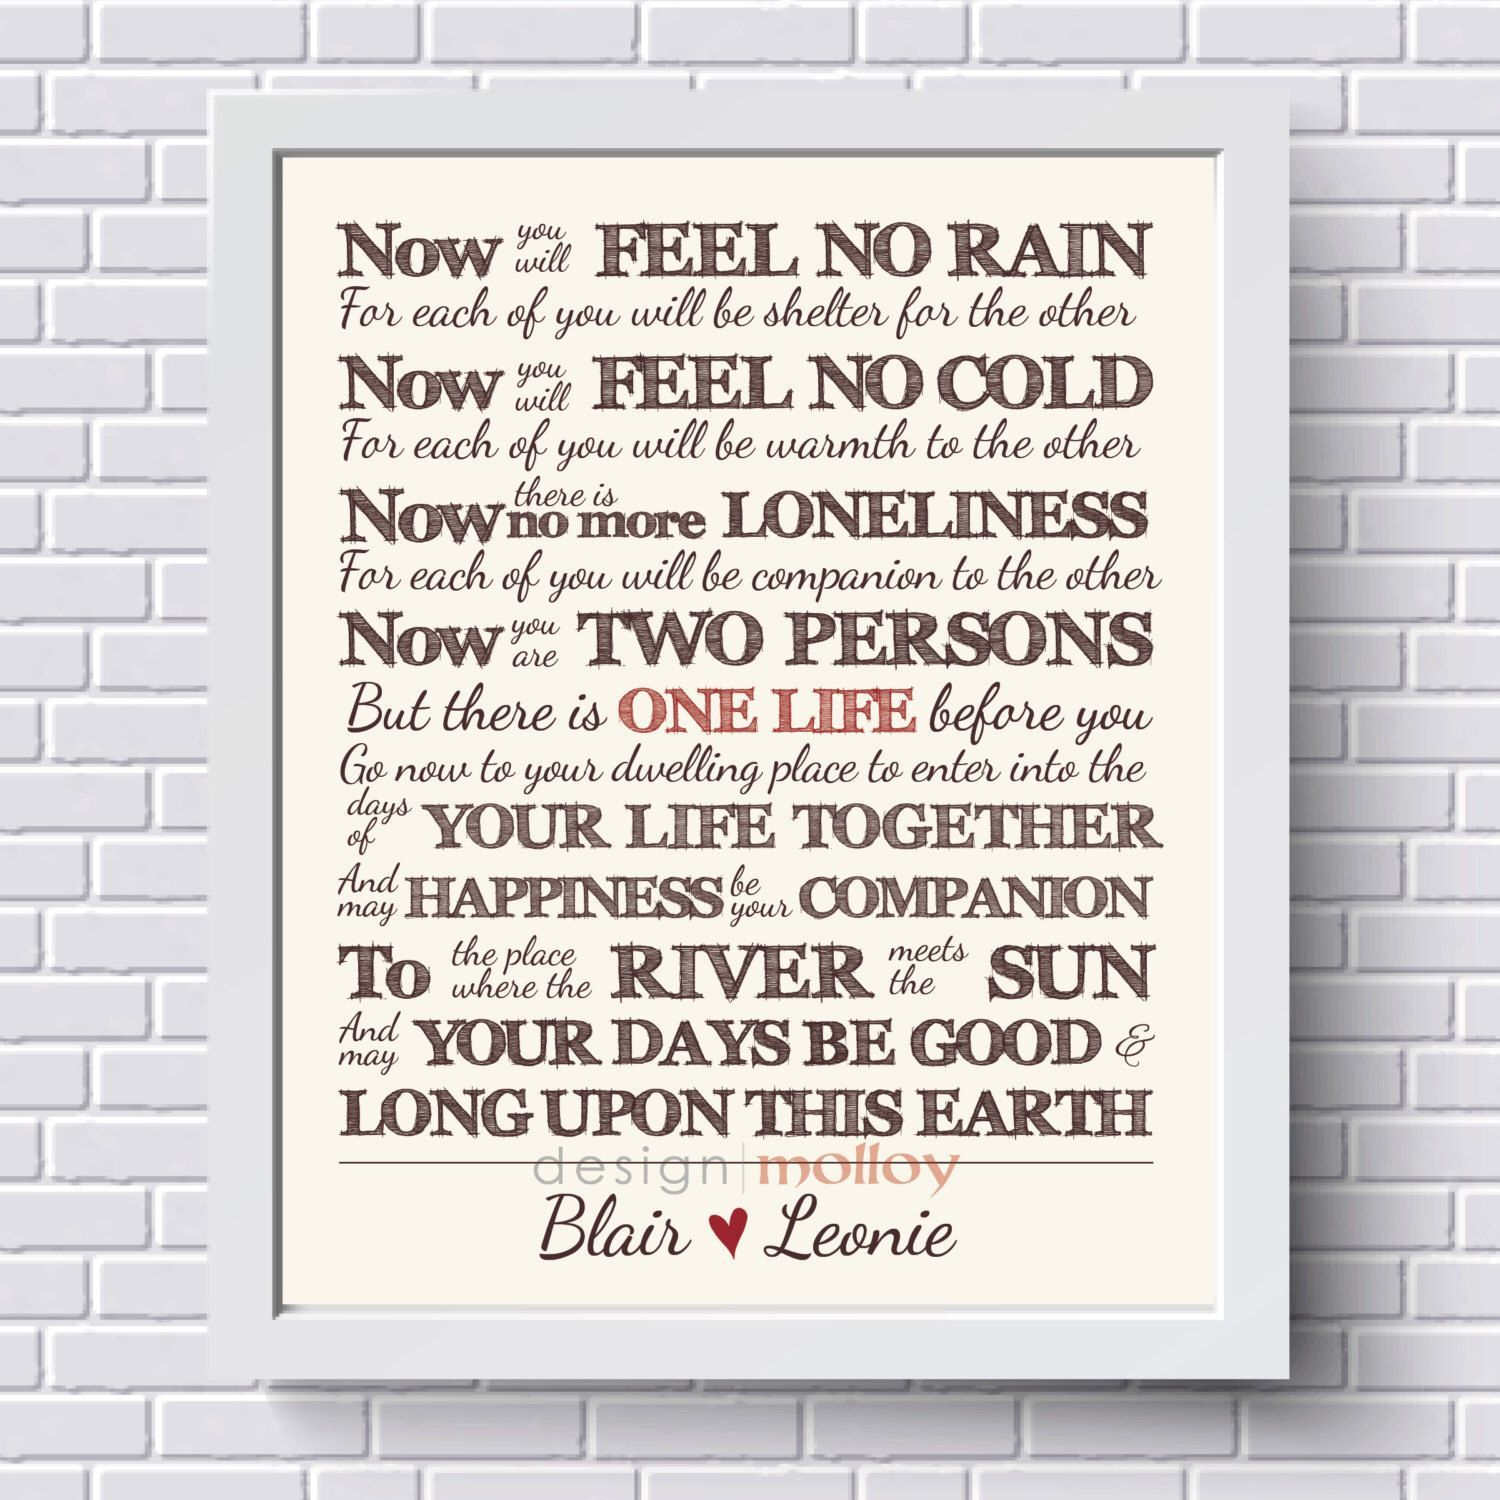 Customized Apache Wedding Blessing Print Gift Artwork For Bride And Groom